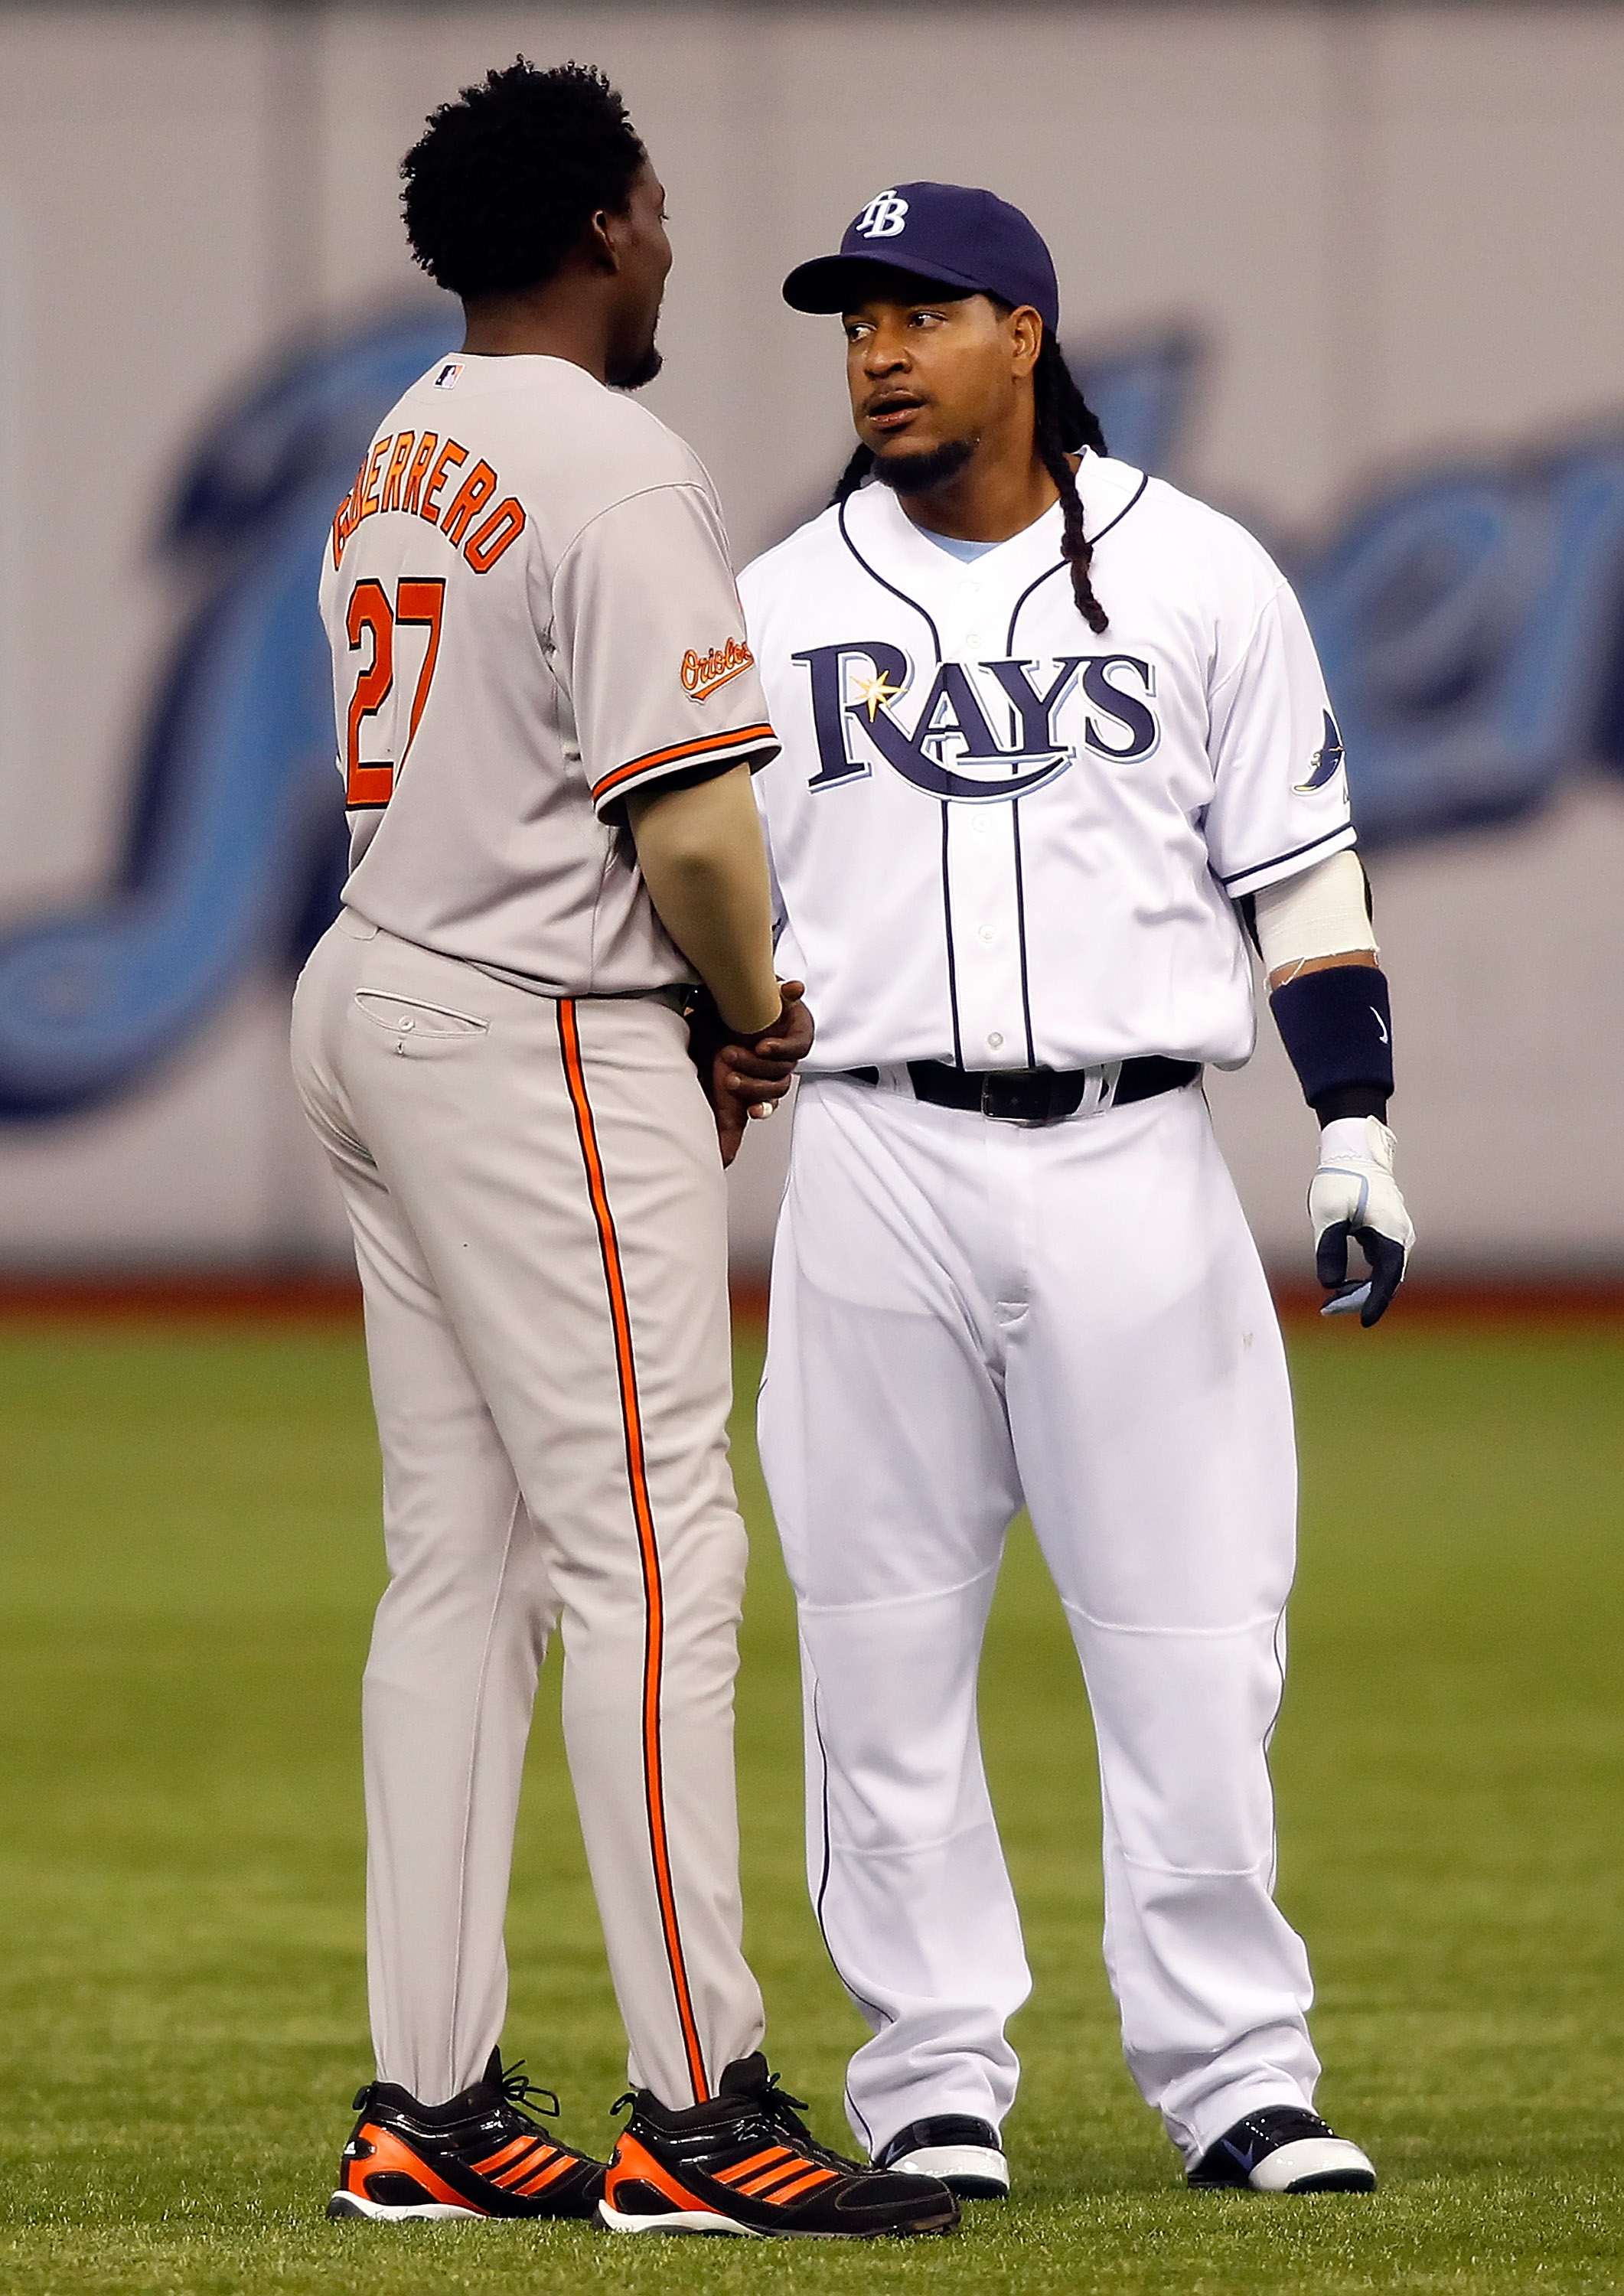 ST. PETERSBURG, FL - APRIL 02:  Designated hitter Manny Ramirez #24 of the Tampa Bay Rays talks with designated hitter Vladimir Guerrero #27 of the Baltimore Orioles just before the start of the game at Tropicana Field on April 2, 2011 in St. Petersburg,